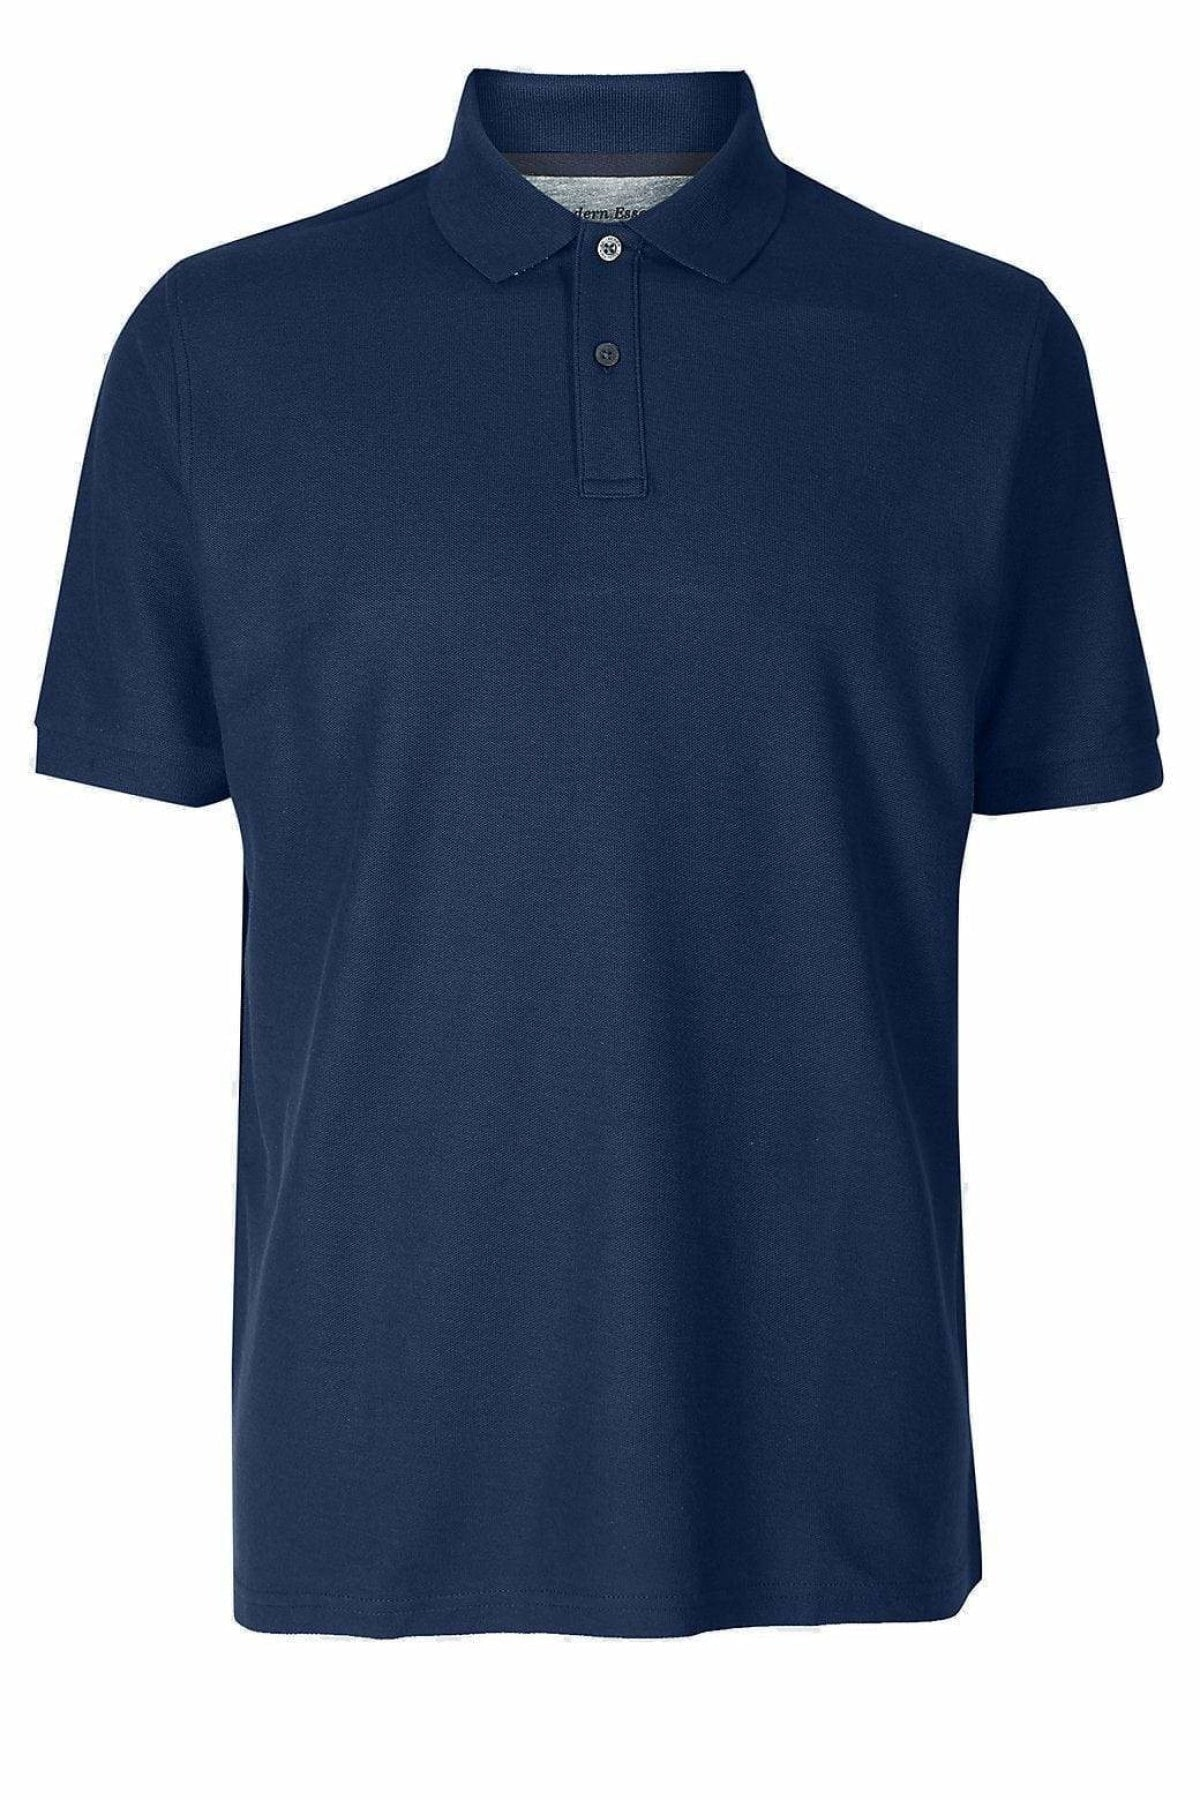 Marks & Spencer Ex M&S Classic Polo Shirt | 3XL / Navy Secret Label